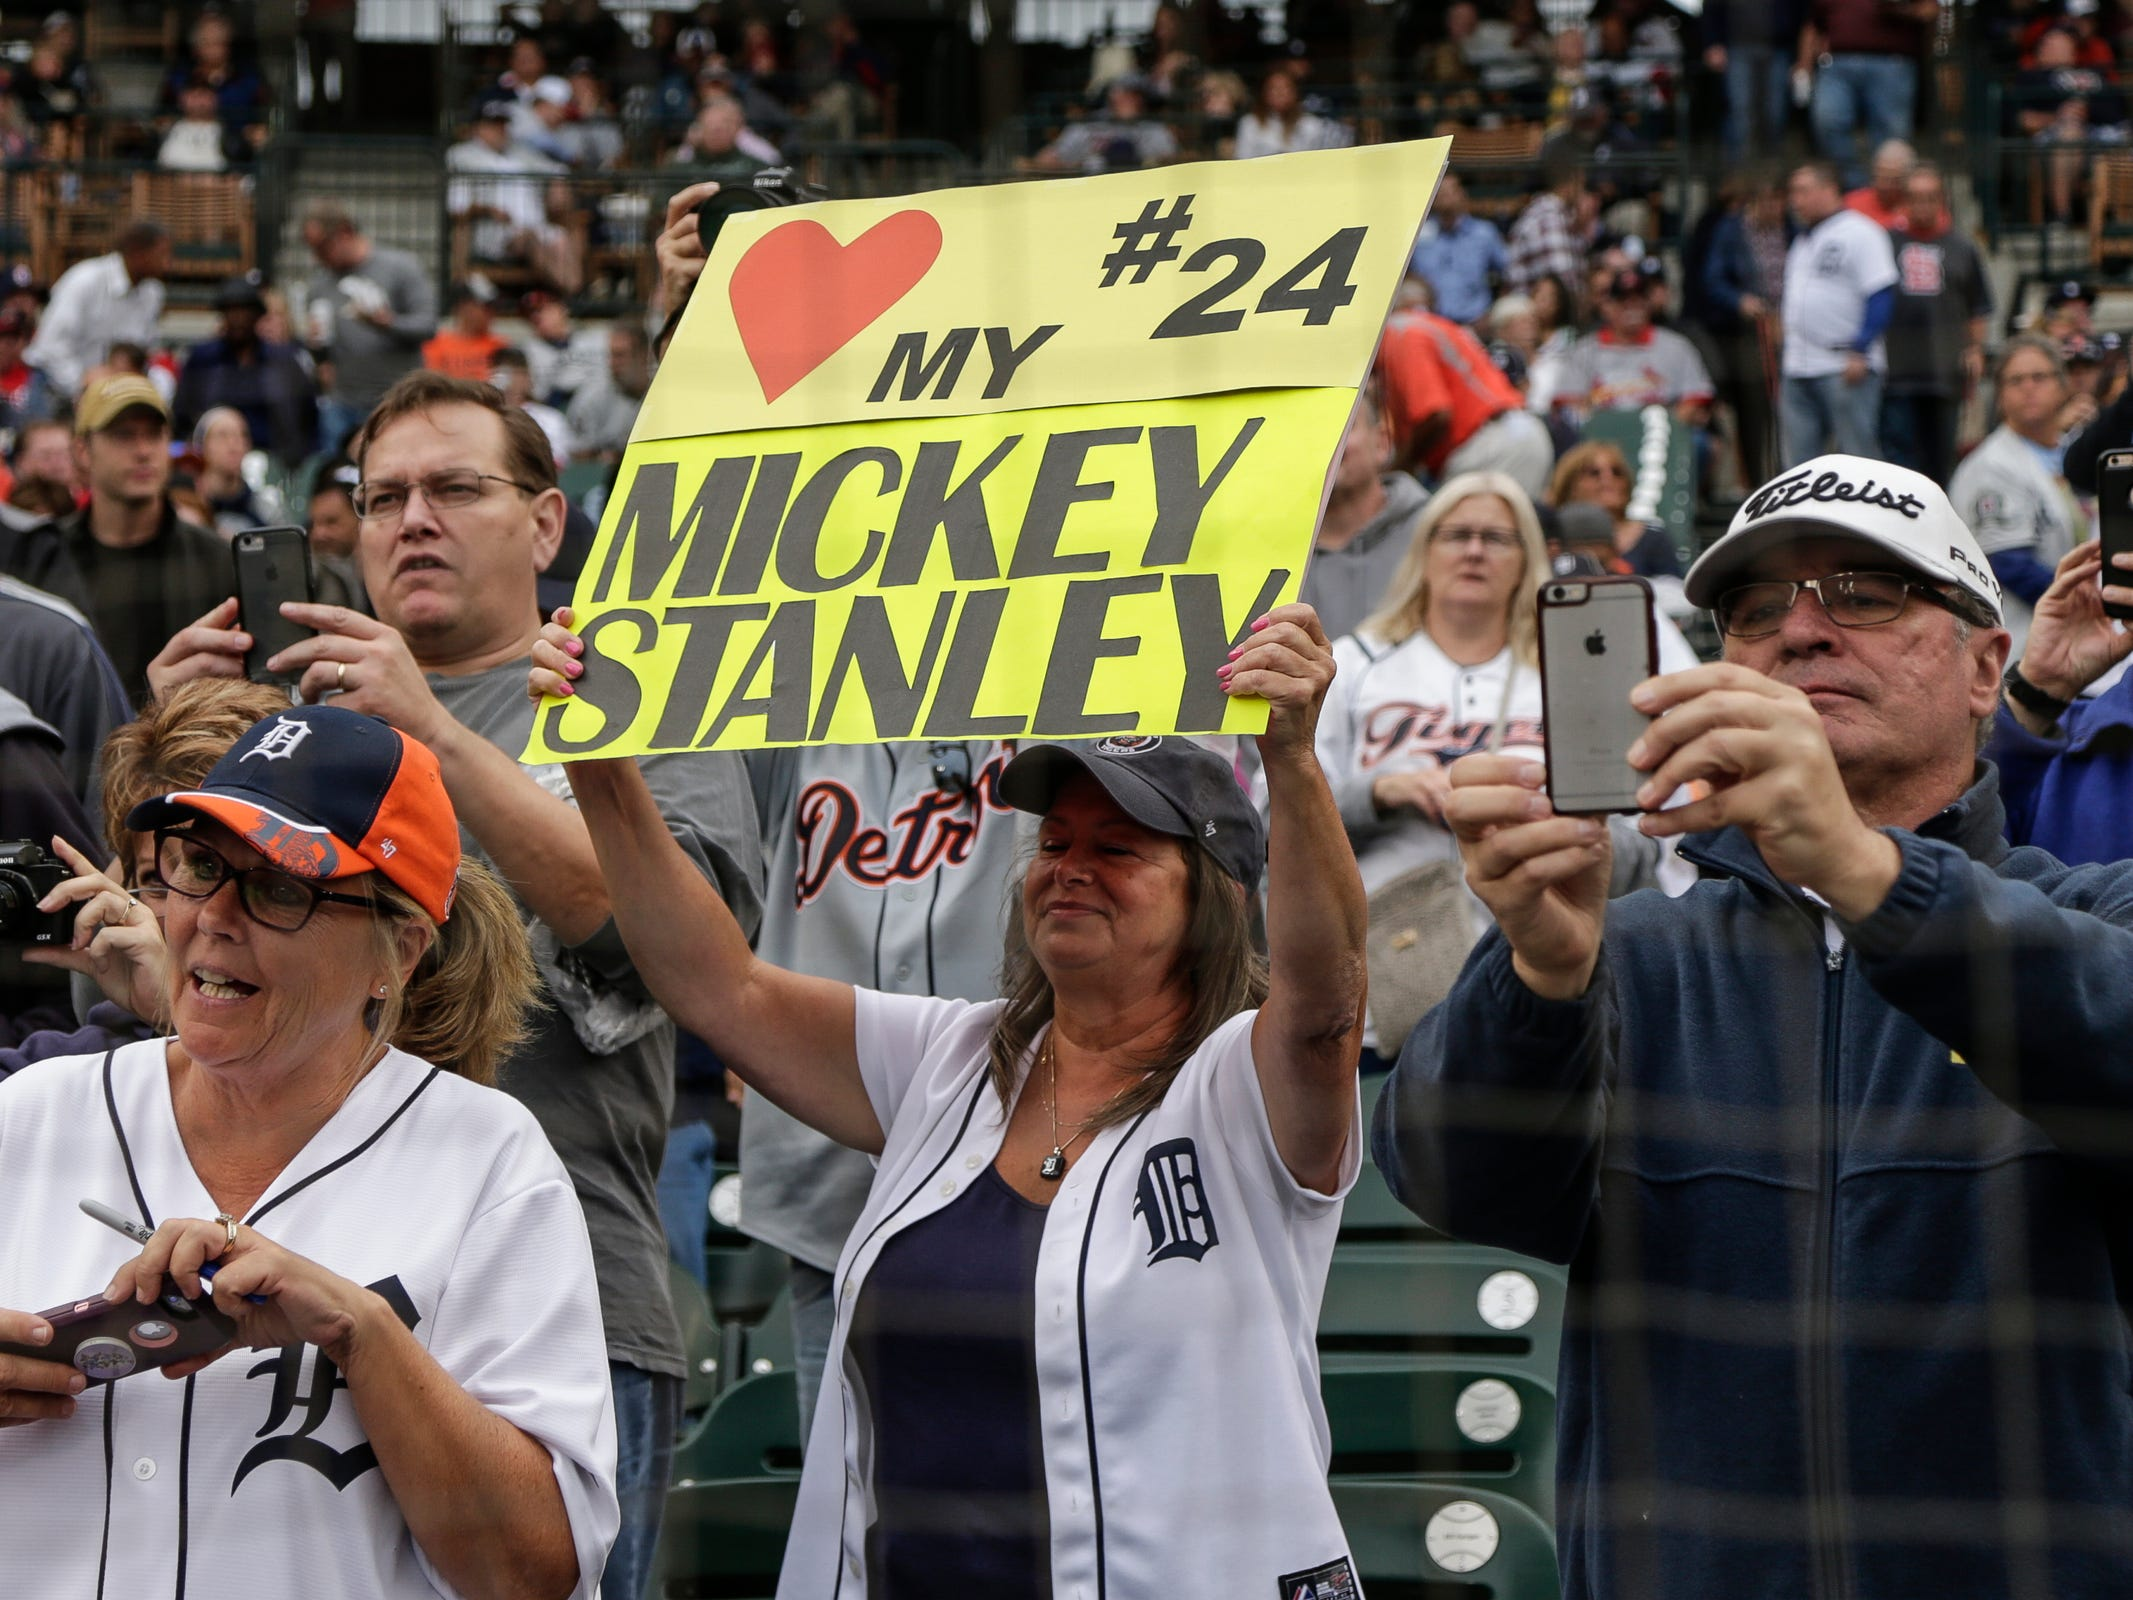 A Detroit Tigers fan holds a Mickey Stanley sign as she celebrates during the 50th anniversary of the 1968 World Series championship at Comerica Park in Detroit, Saturday, Sept. 8, 2018.